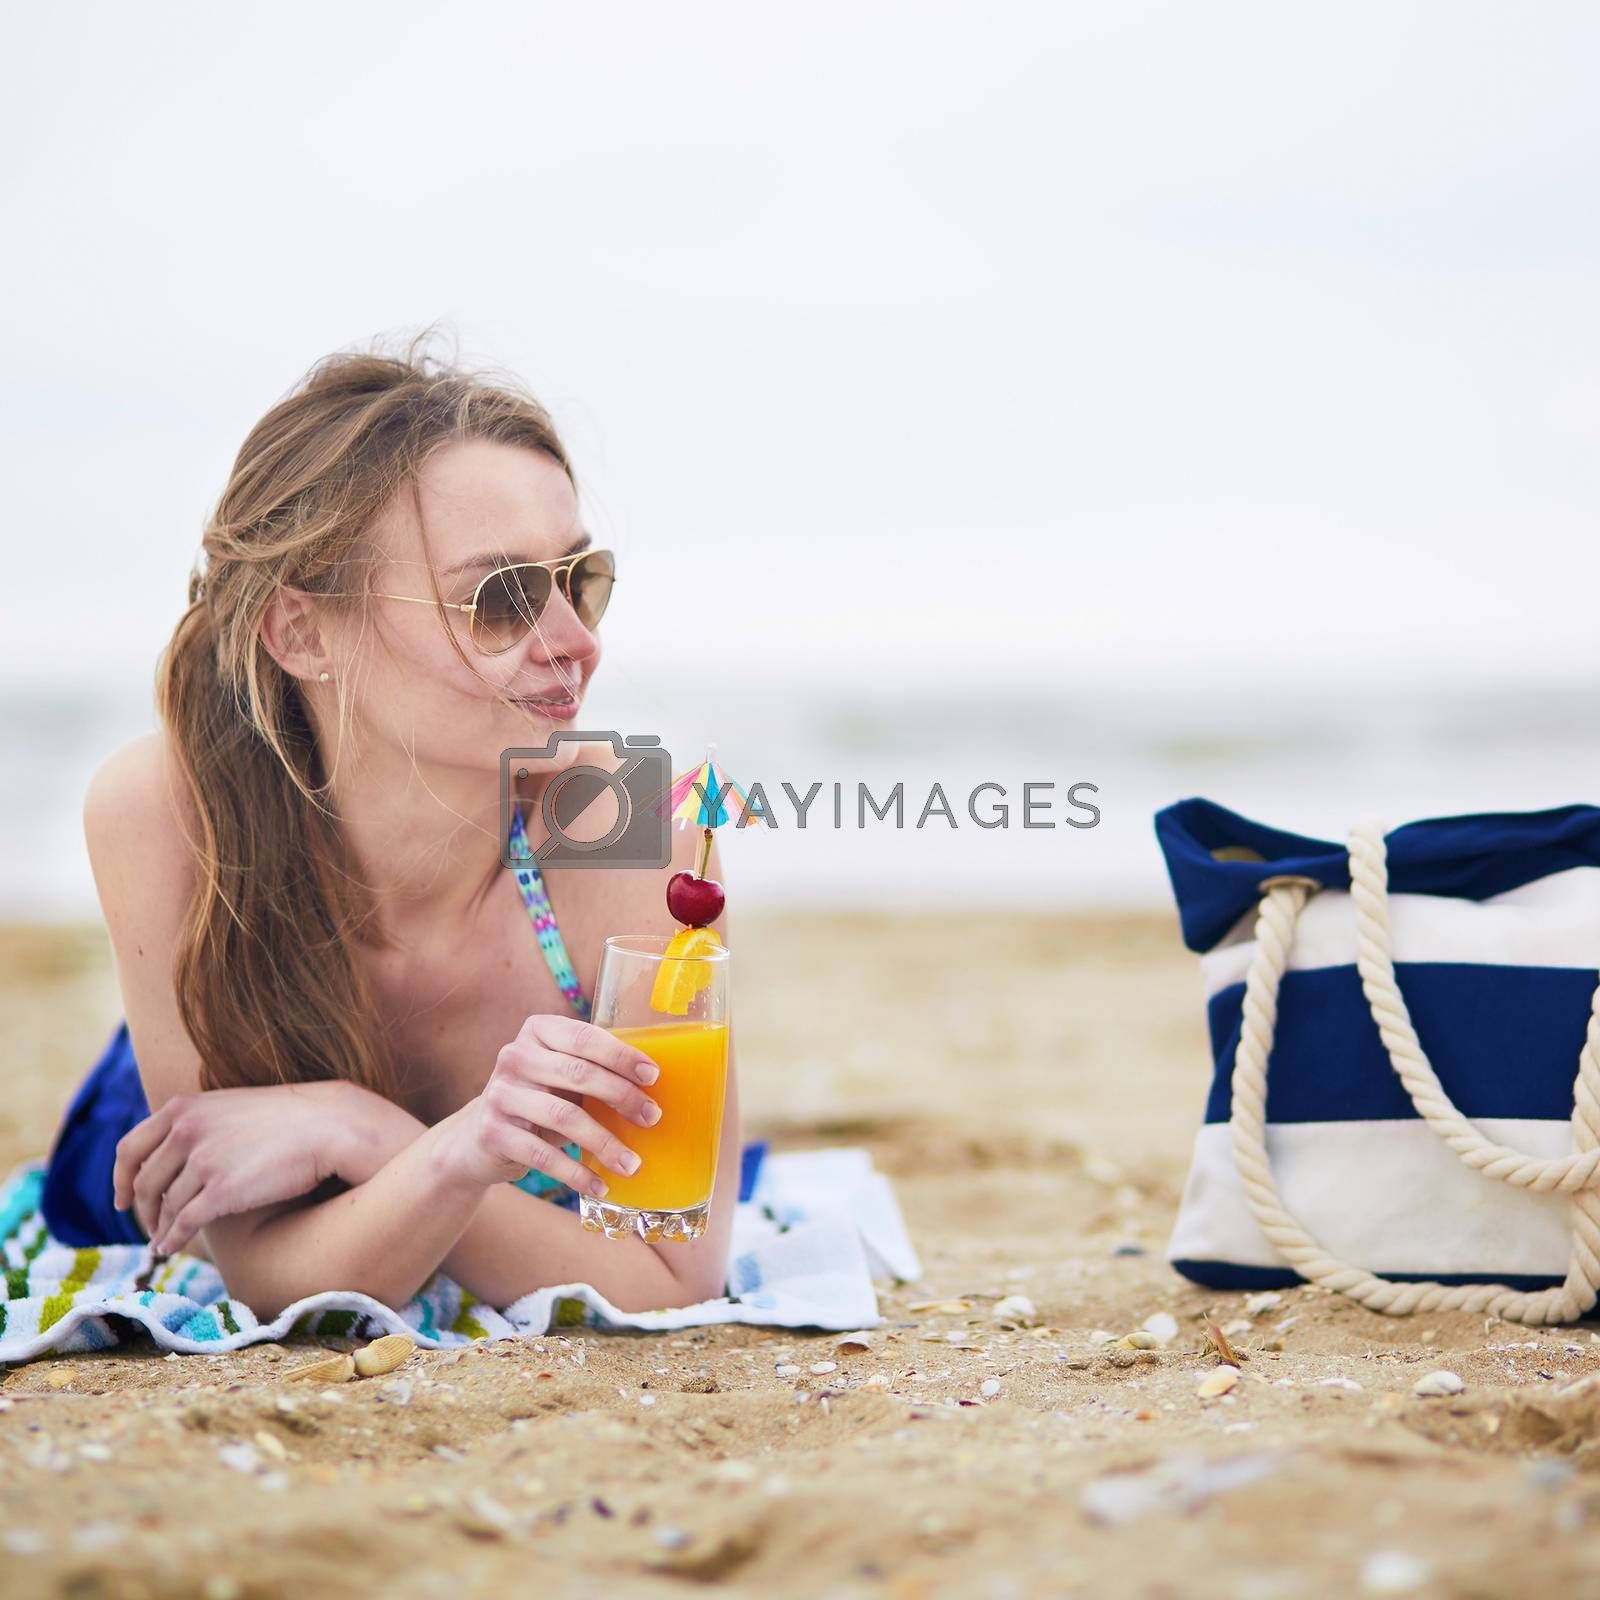 Beautiful young woman relaxing and sunbathing on beach, drinking delicious fruit or alcohol cocktail with paper umbrella, beach bag on sand near the model